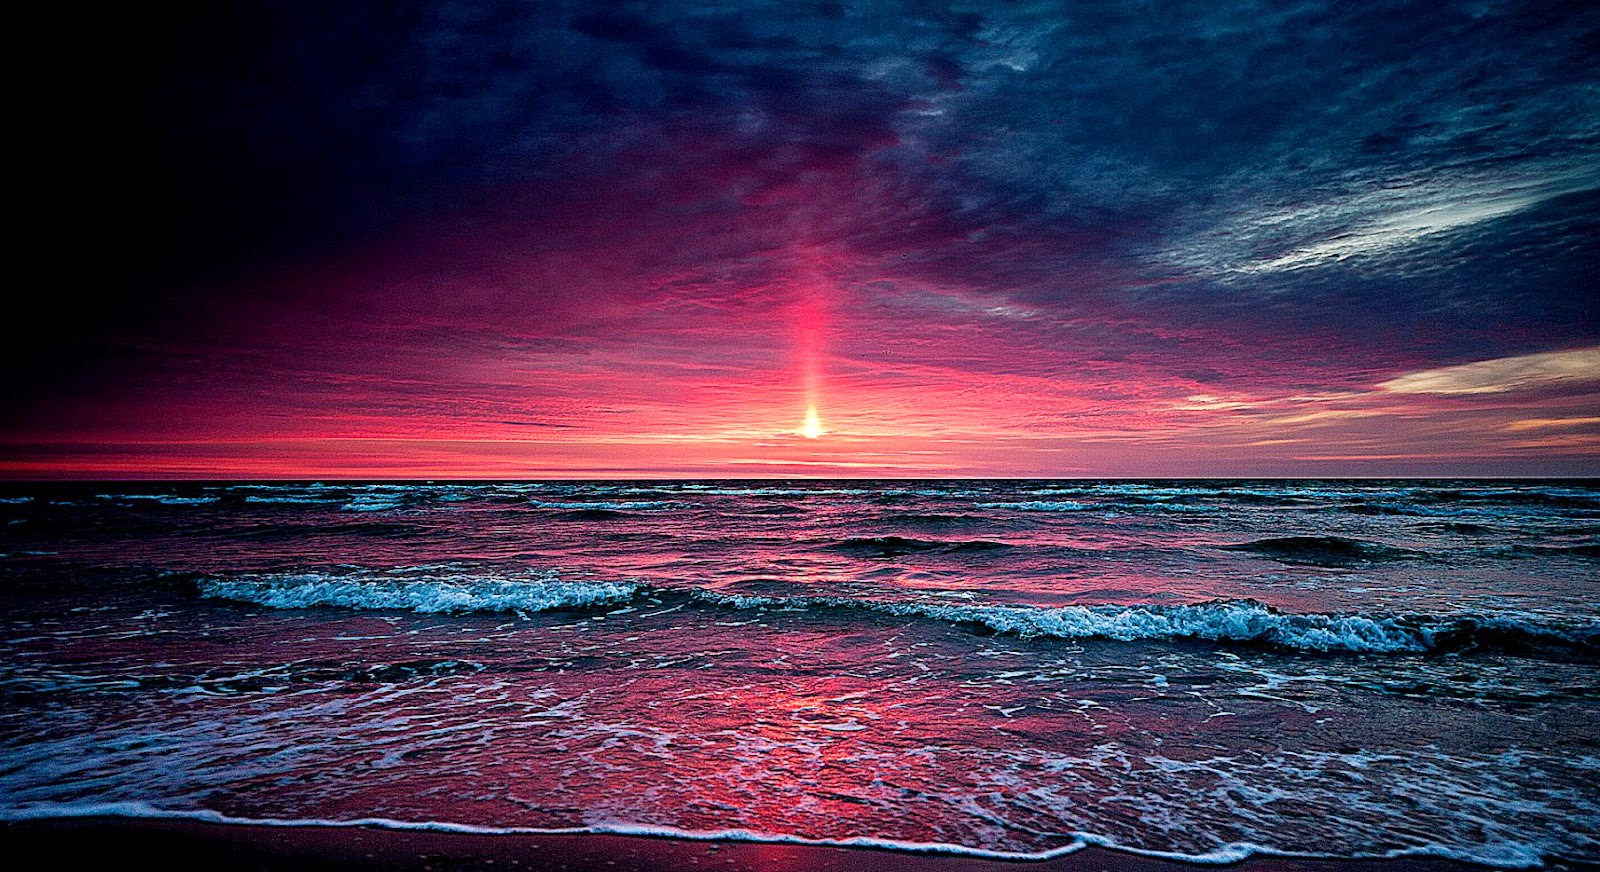 Beach Sunset Backgrounds: Best Beach Pictures